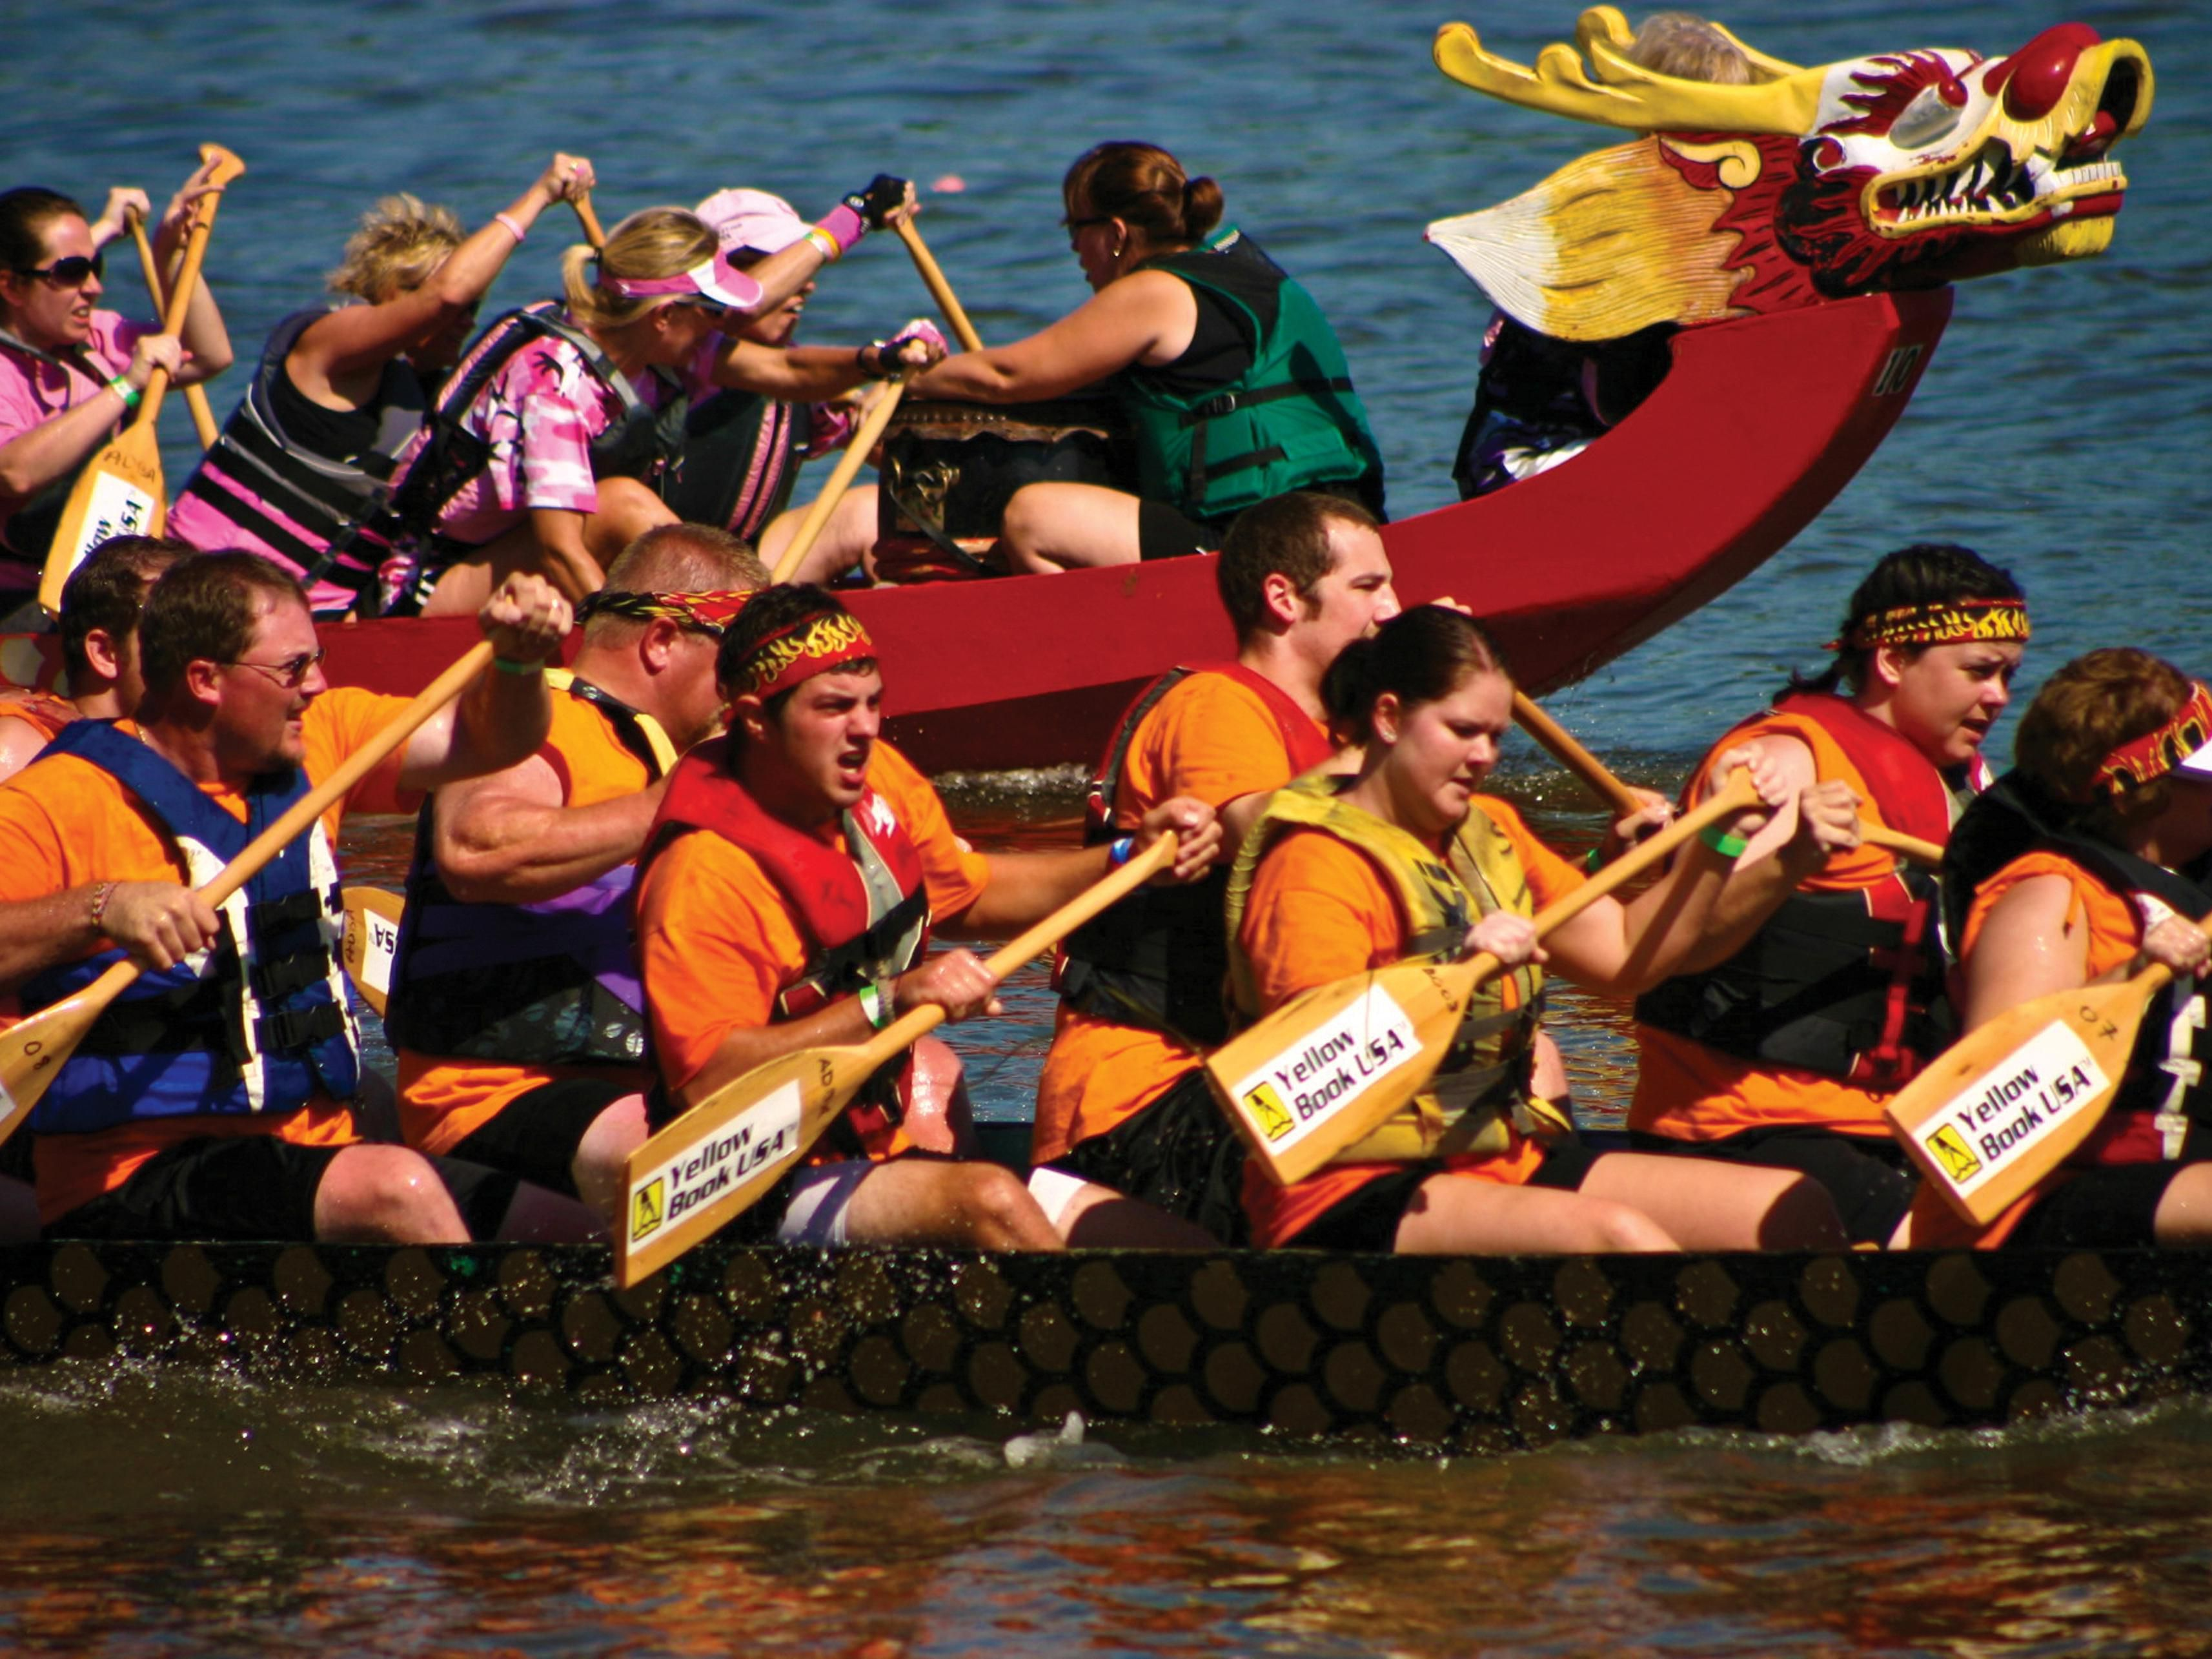 September's Dragon Boat Festival is a must-see on the Mississippi